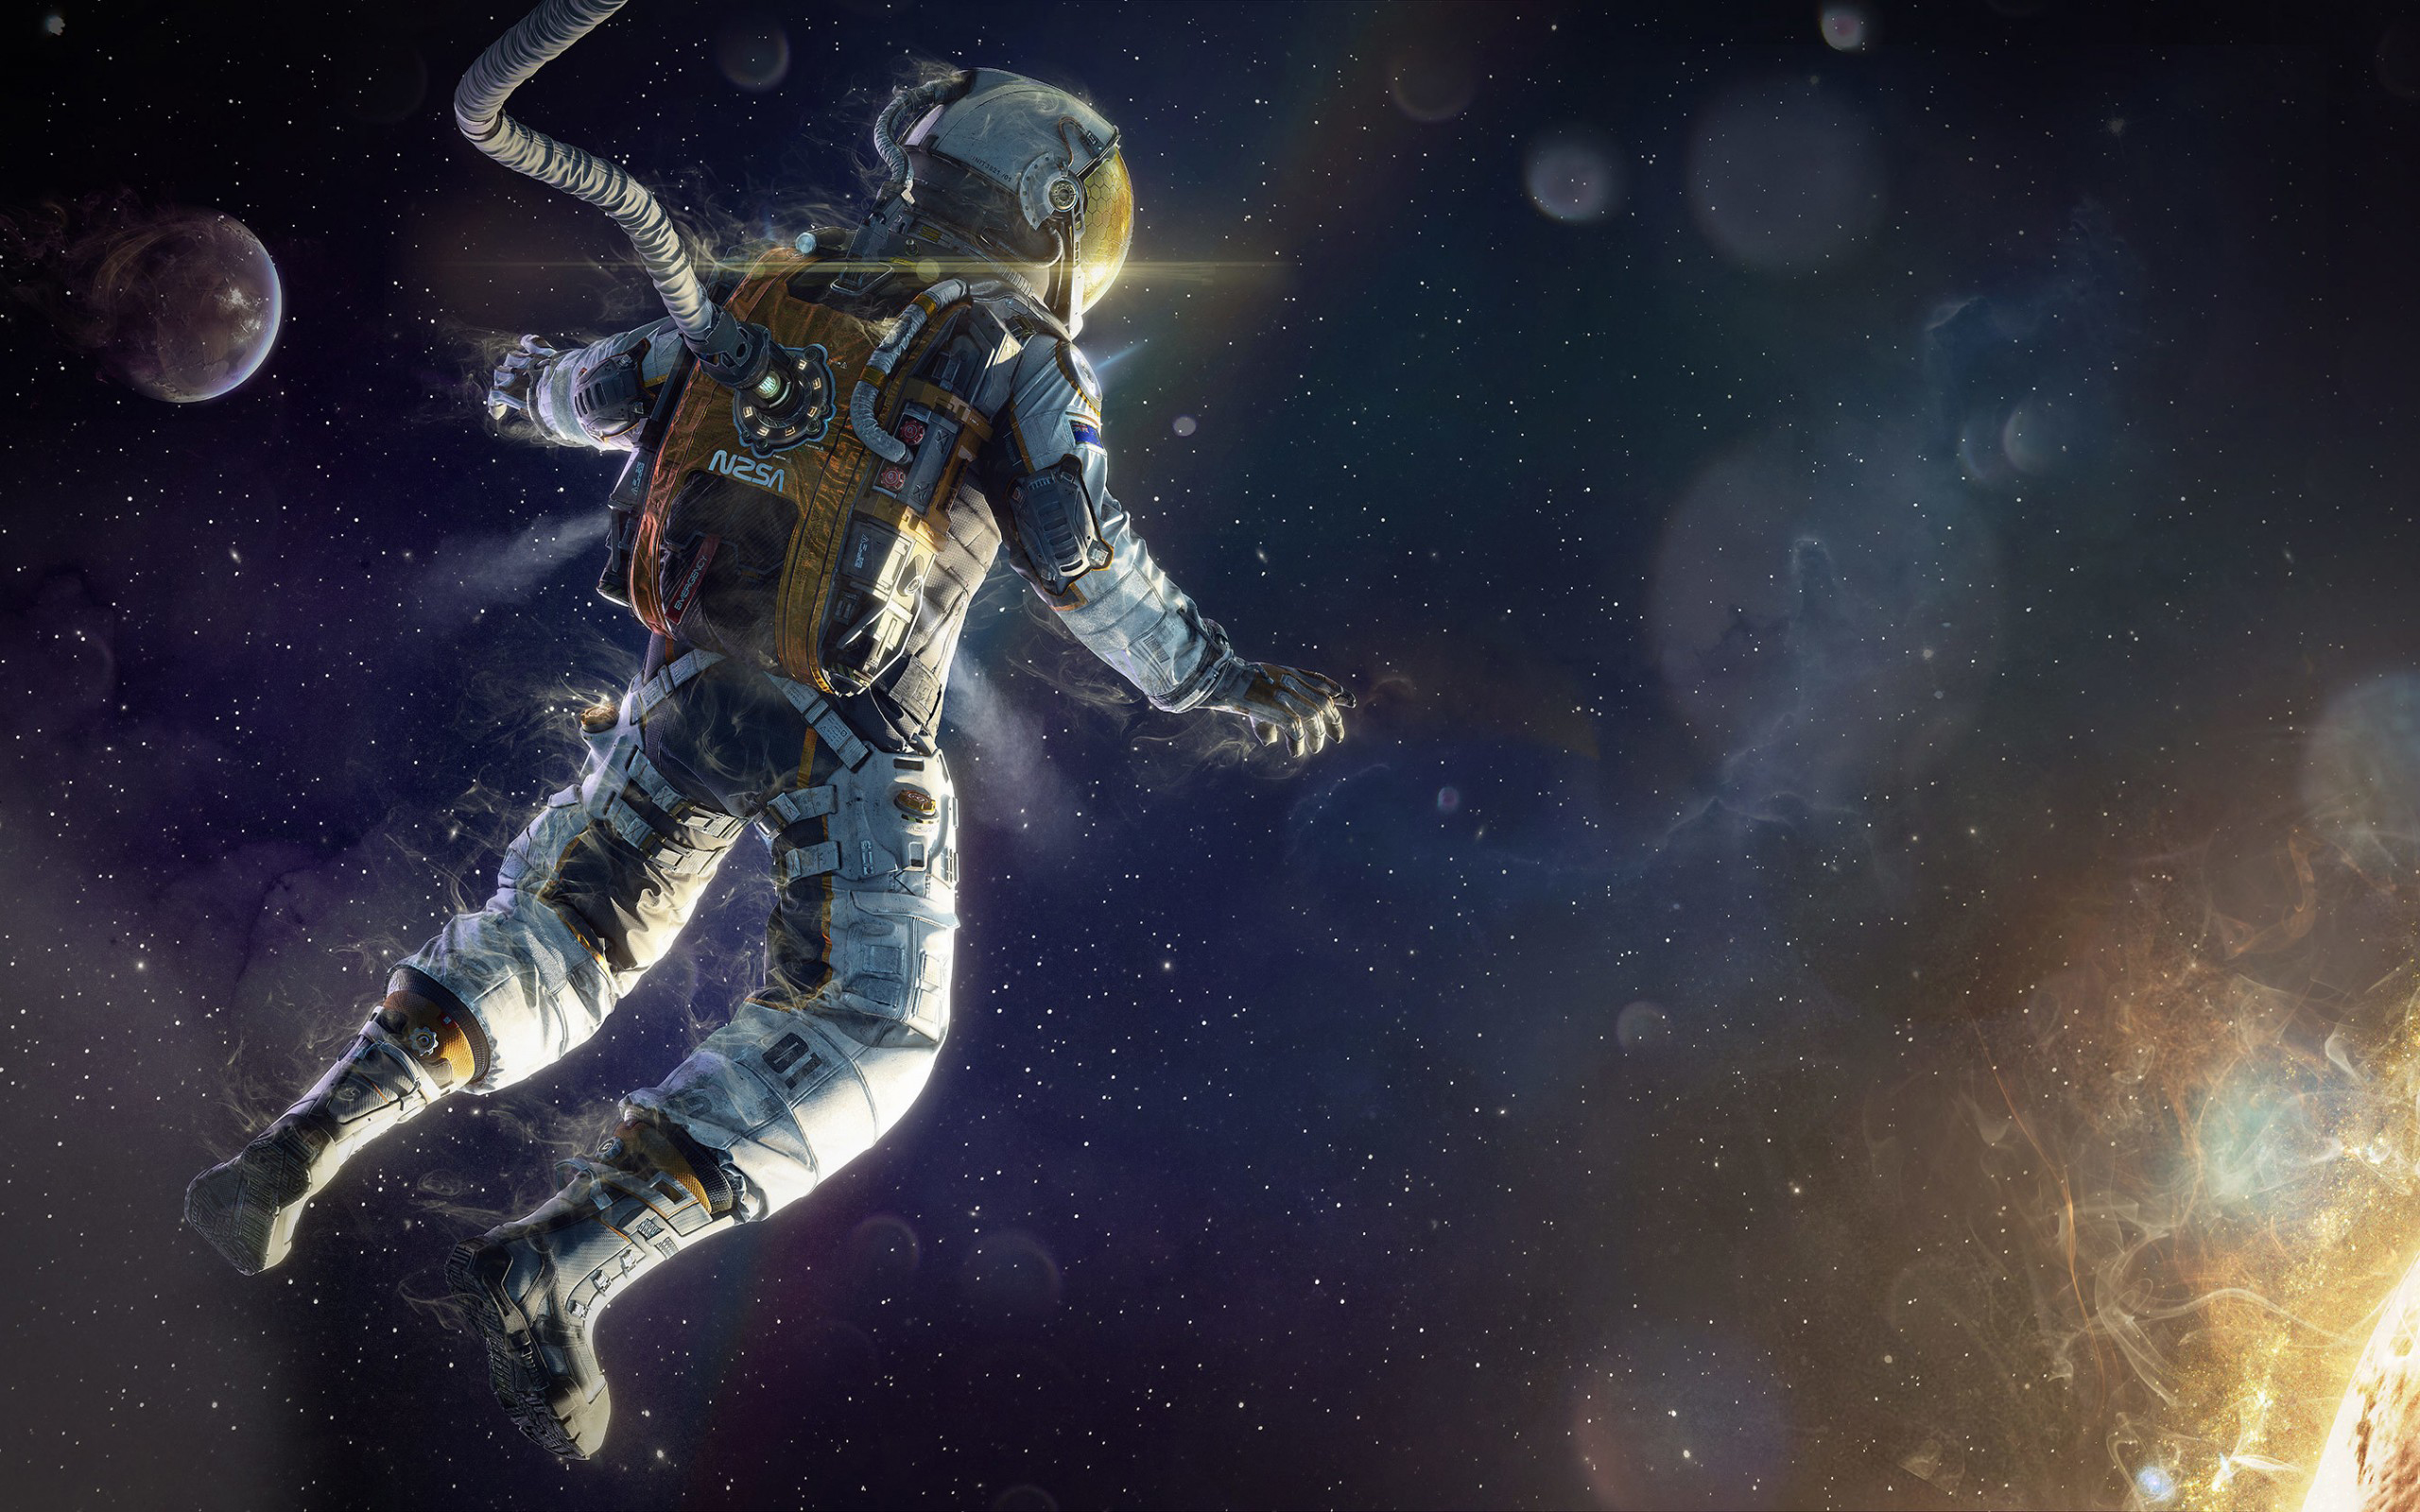 Astronaut Computer Wallpapers, Desktop Backgrounds ...